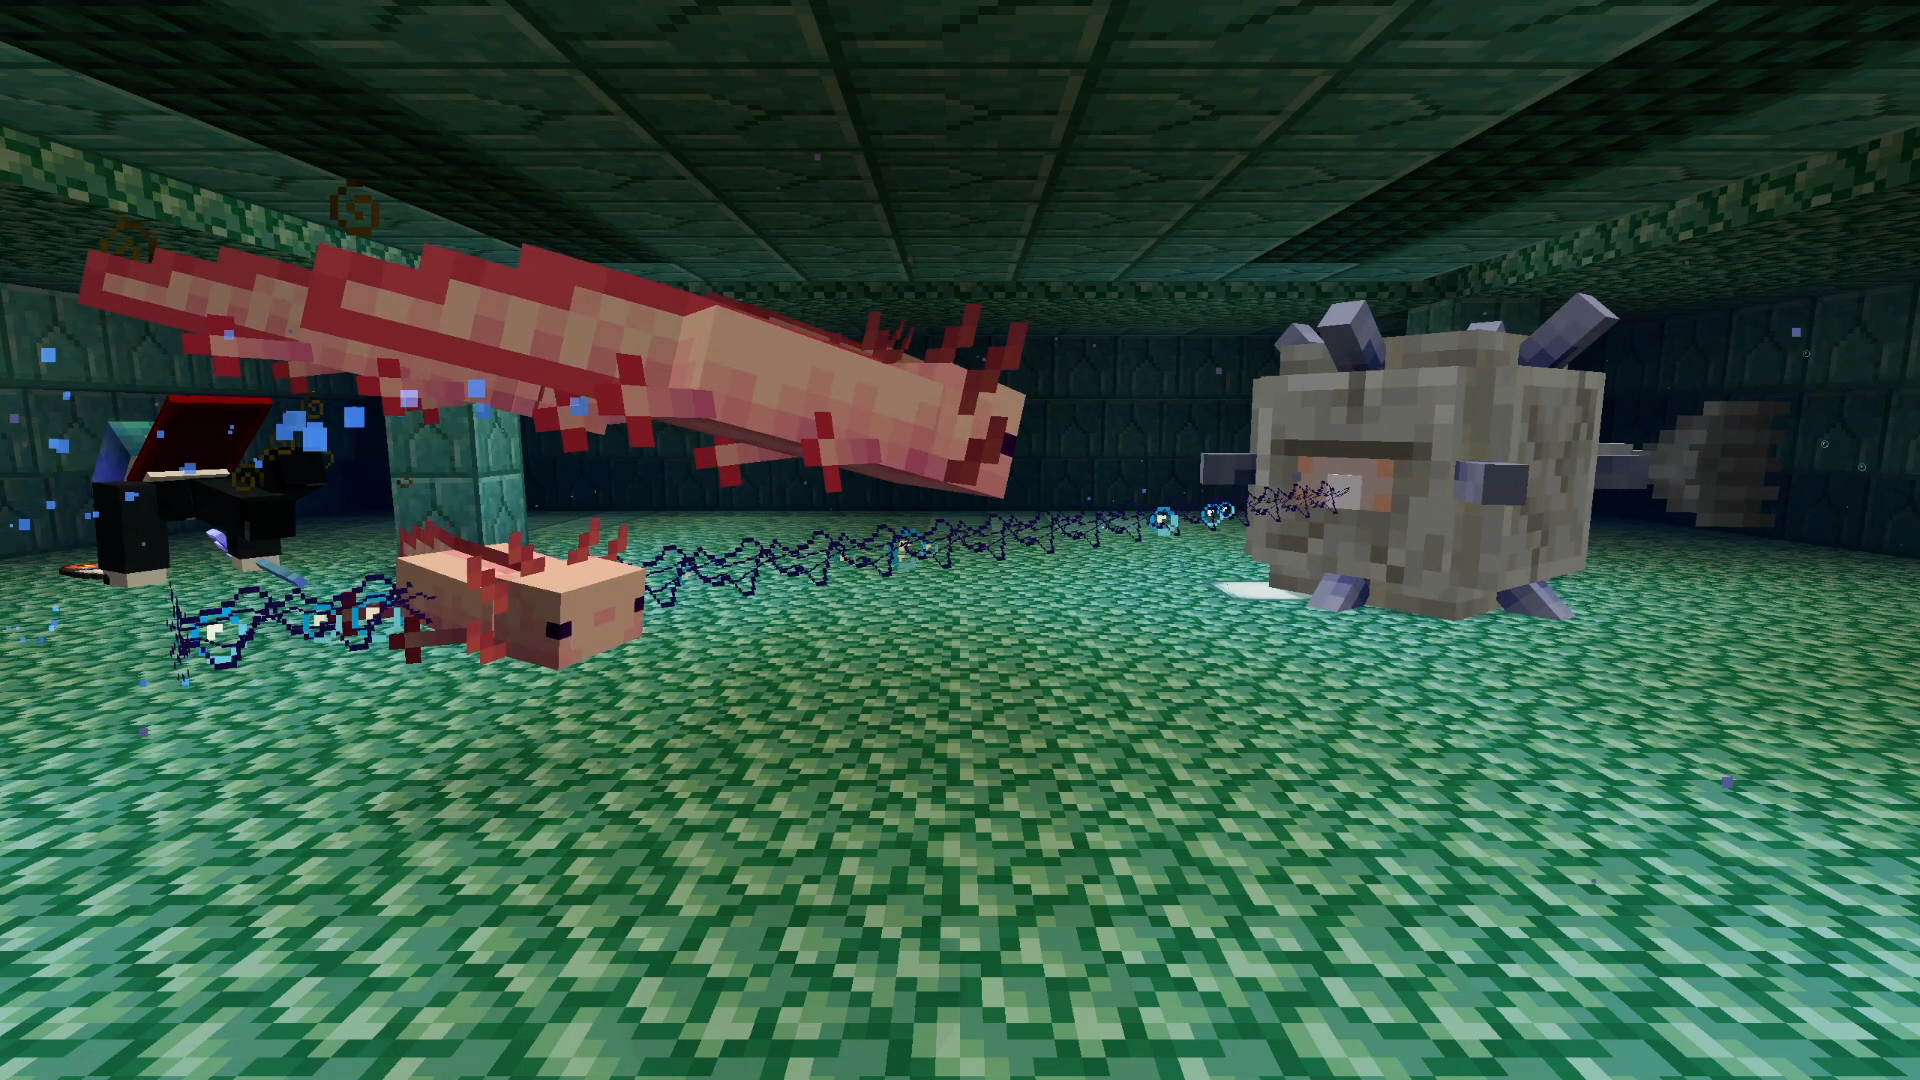 Minecraft Caves and Cliffs Update announced, launching next summer